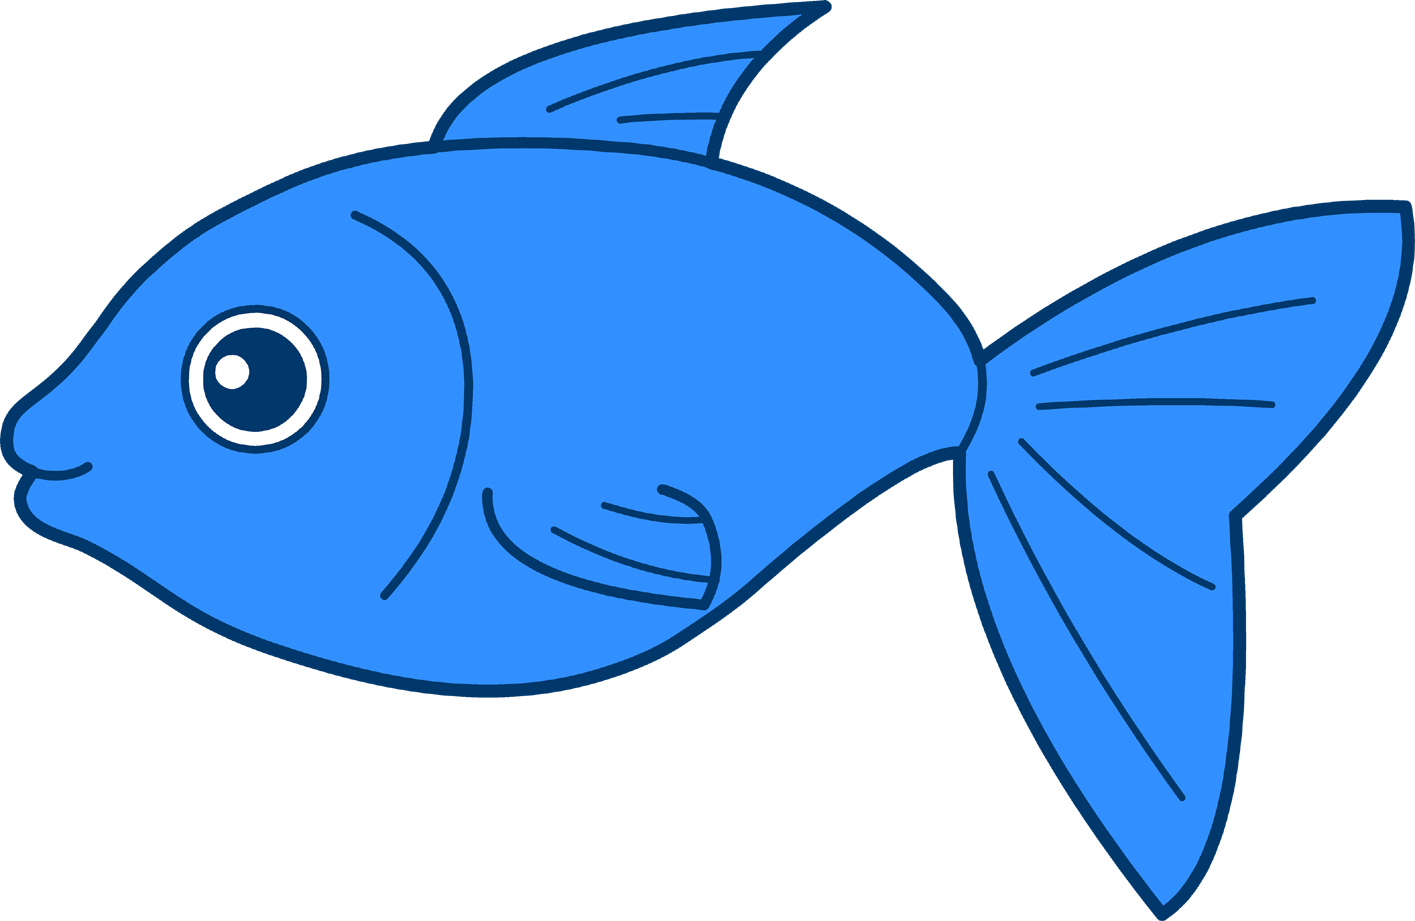 Transparent fish image clipart clip transparent download Fish Clipart For Kids at GetDrawings.com | Free for personal use ... clip transparent download